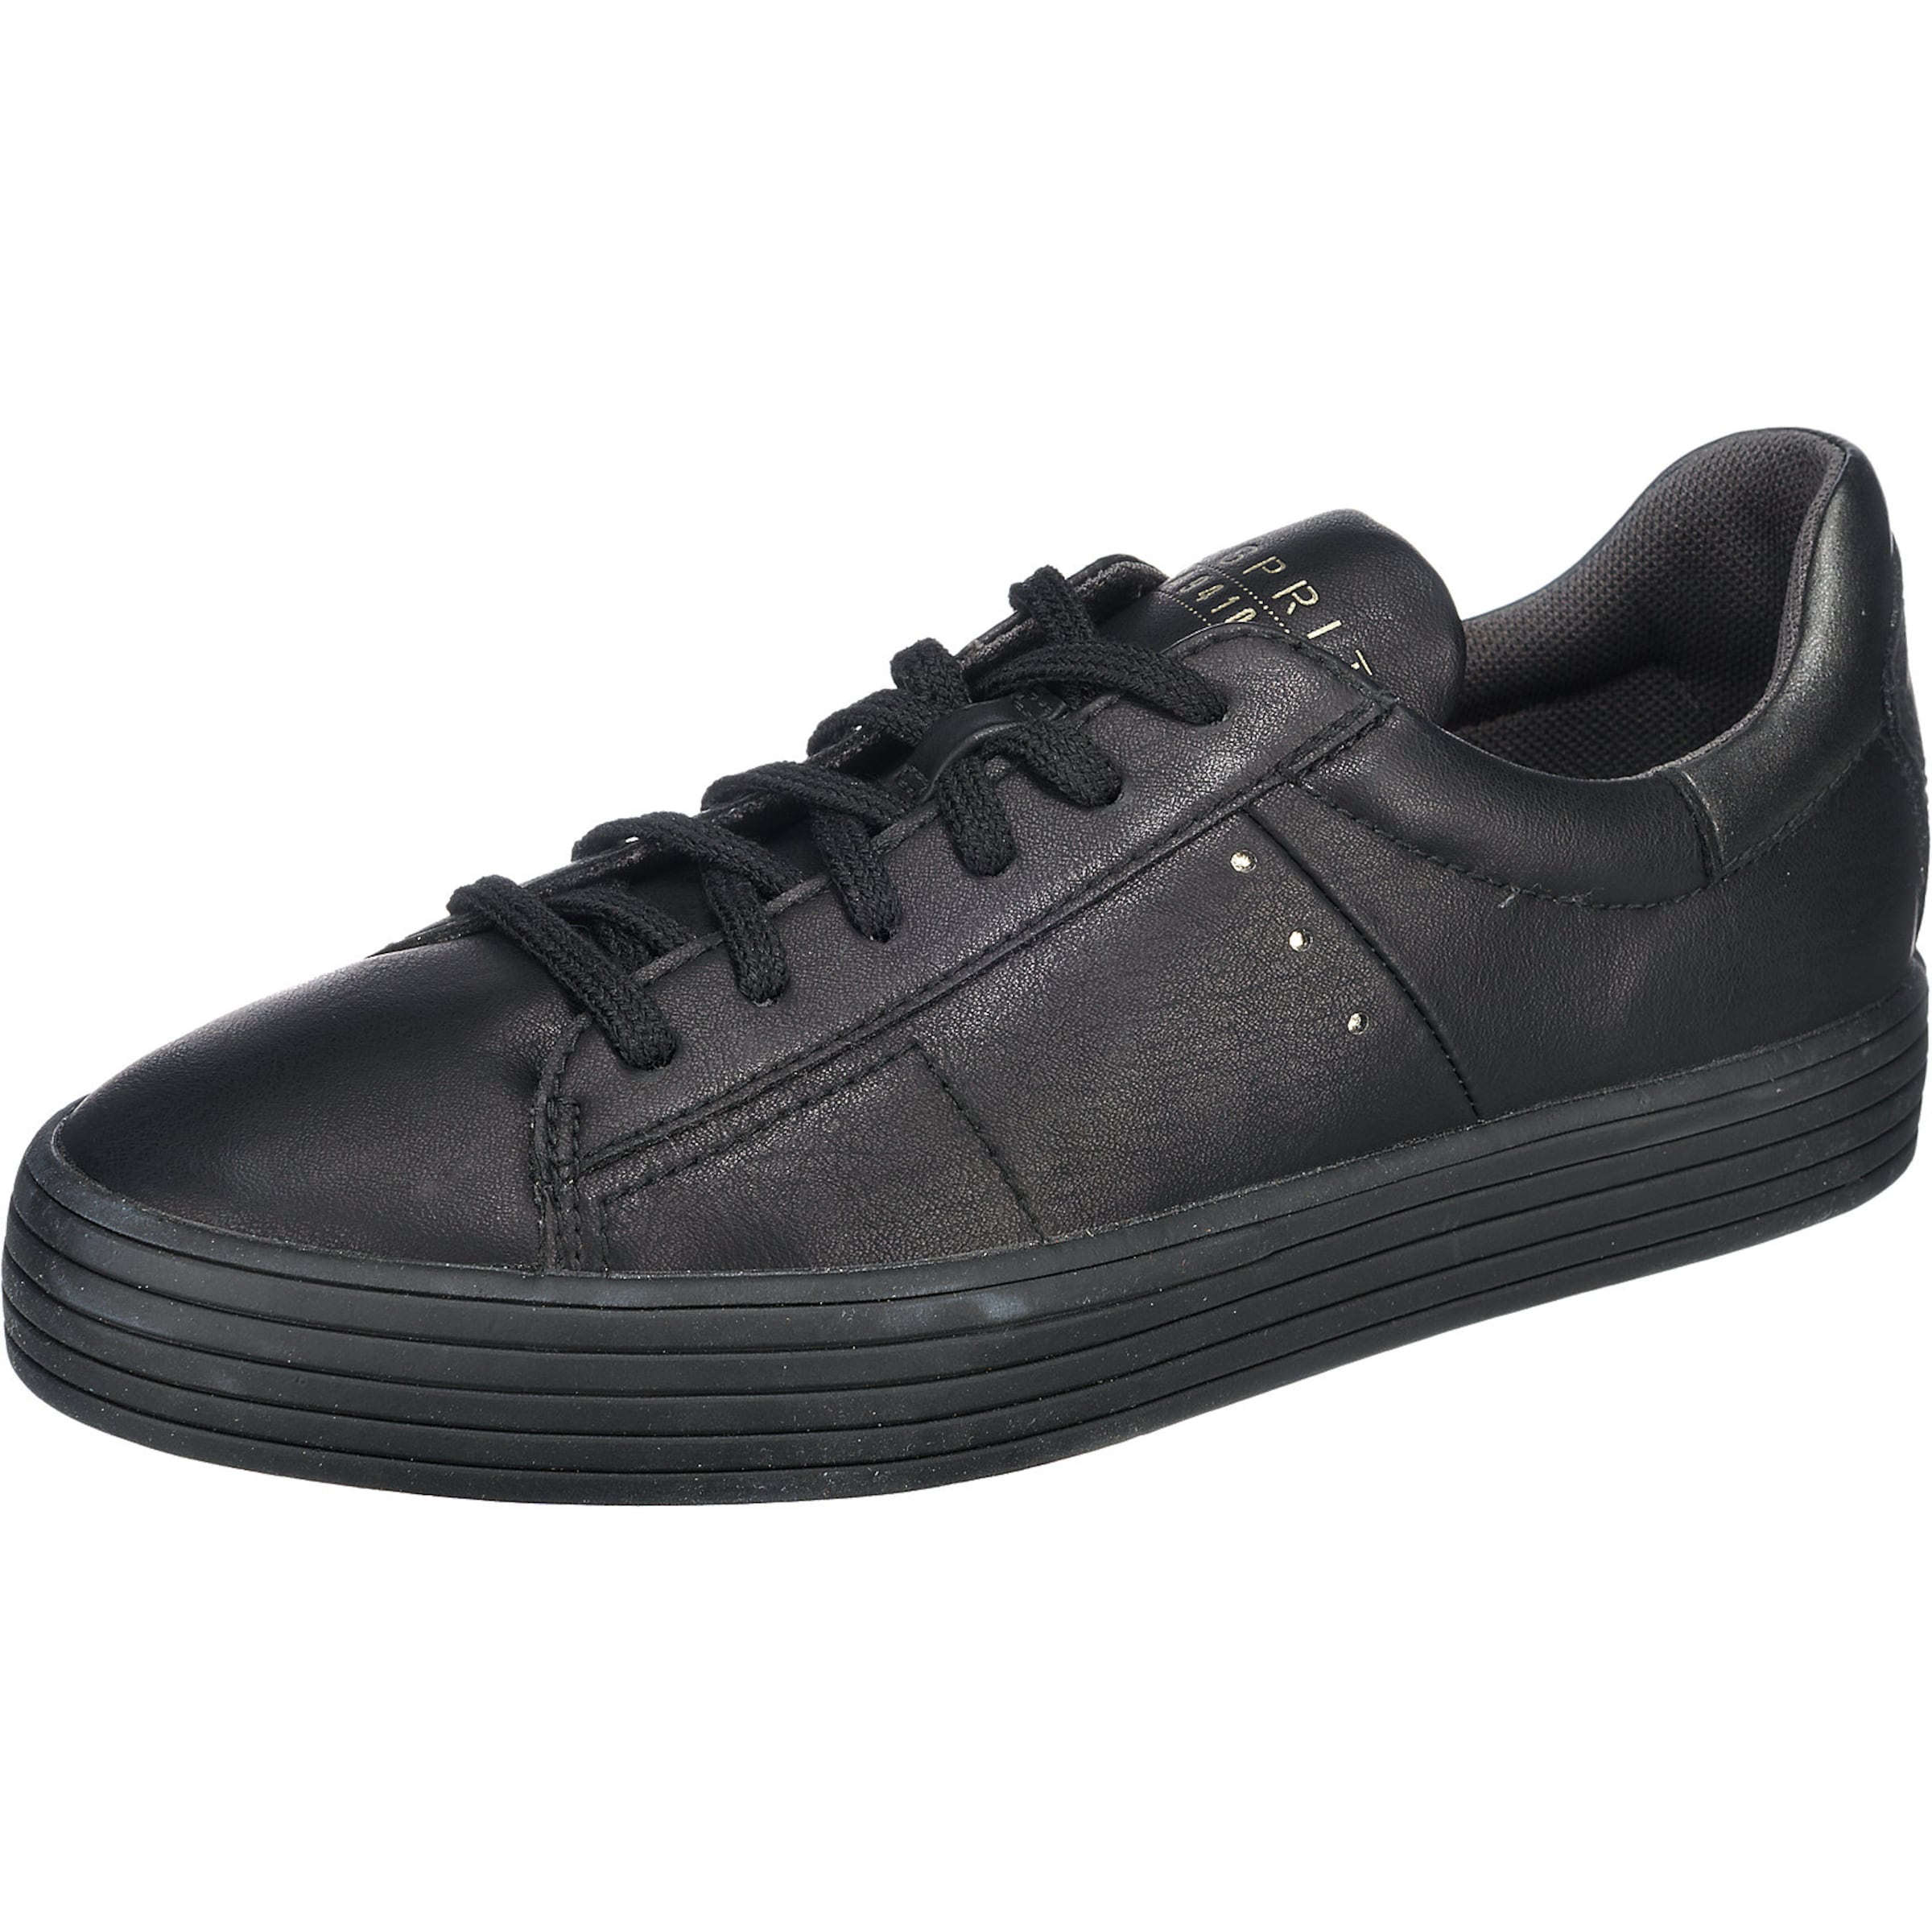 ESPRIT Low Sneaker Sita Lace Up